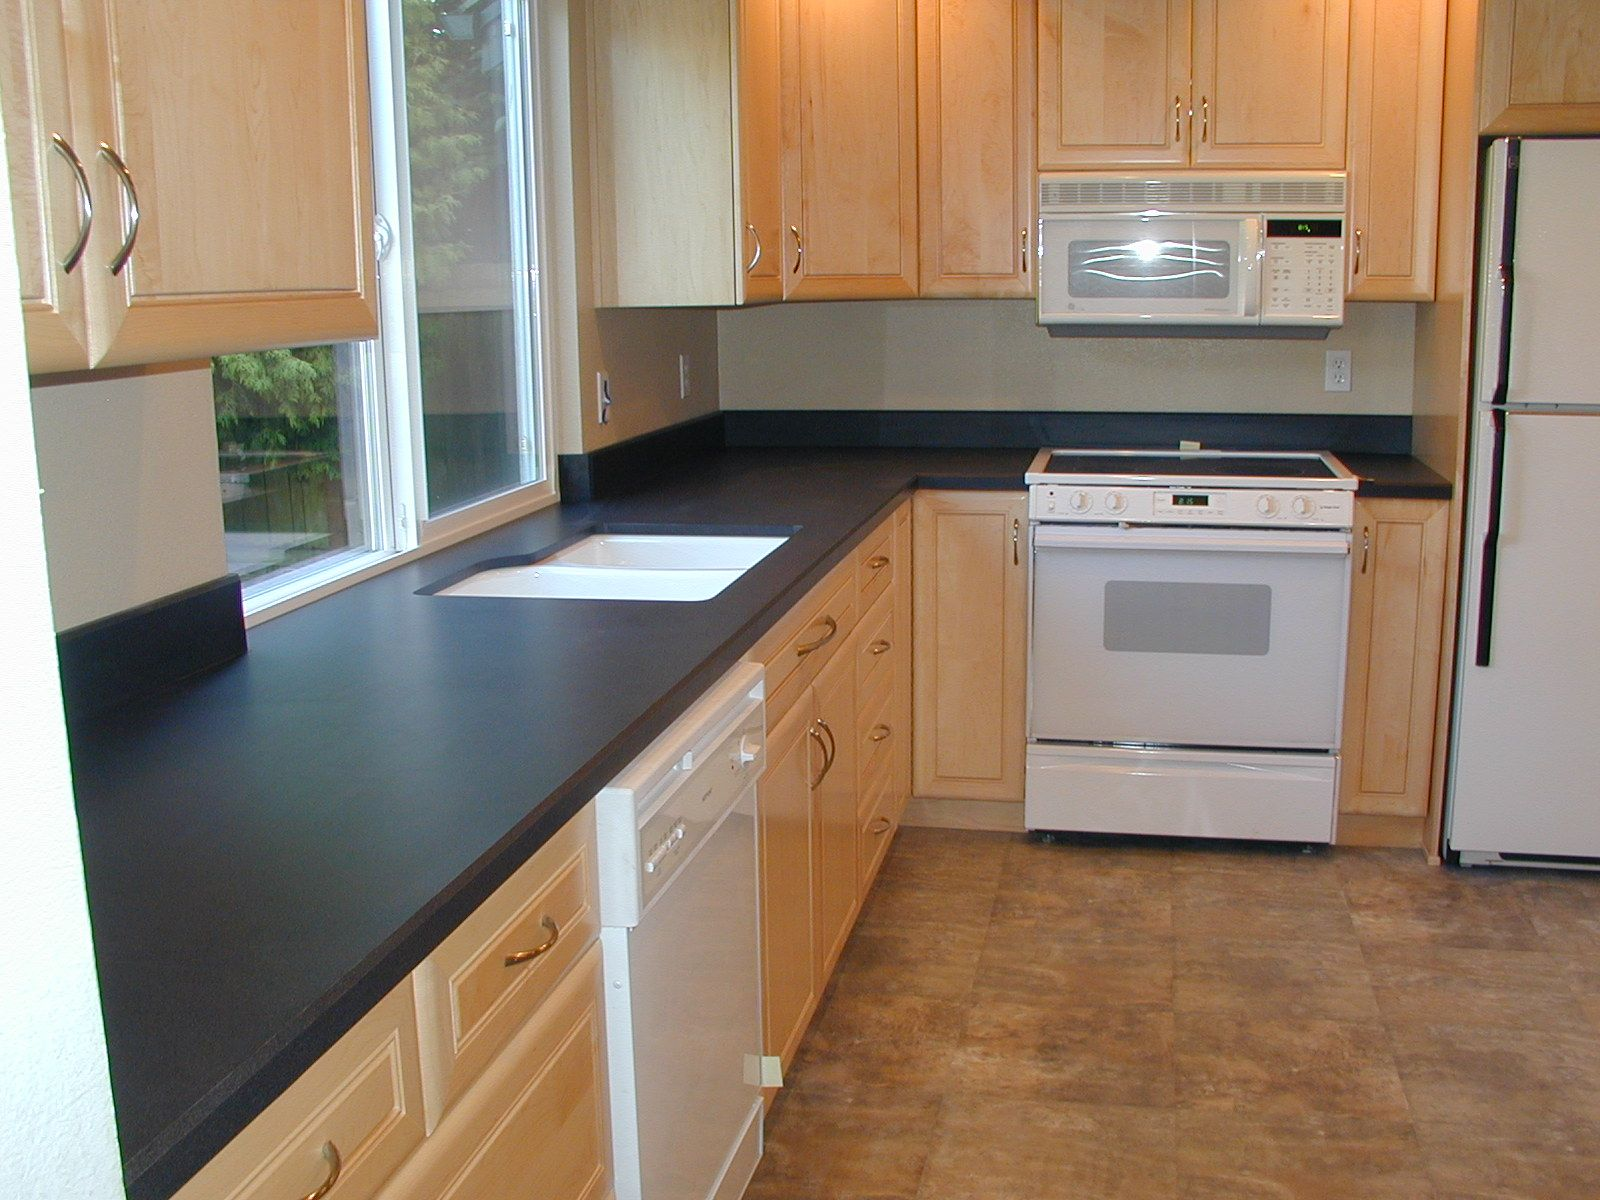 Kitchen ideas with dark countertops countertop design Kitchen countertop ideas